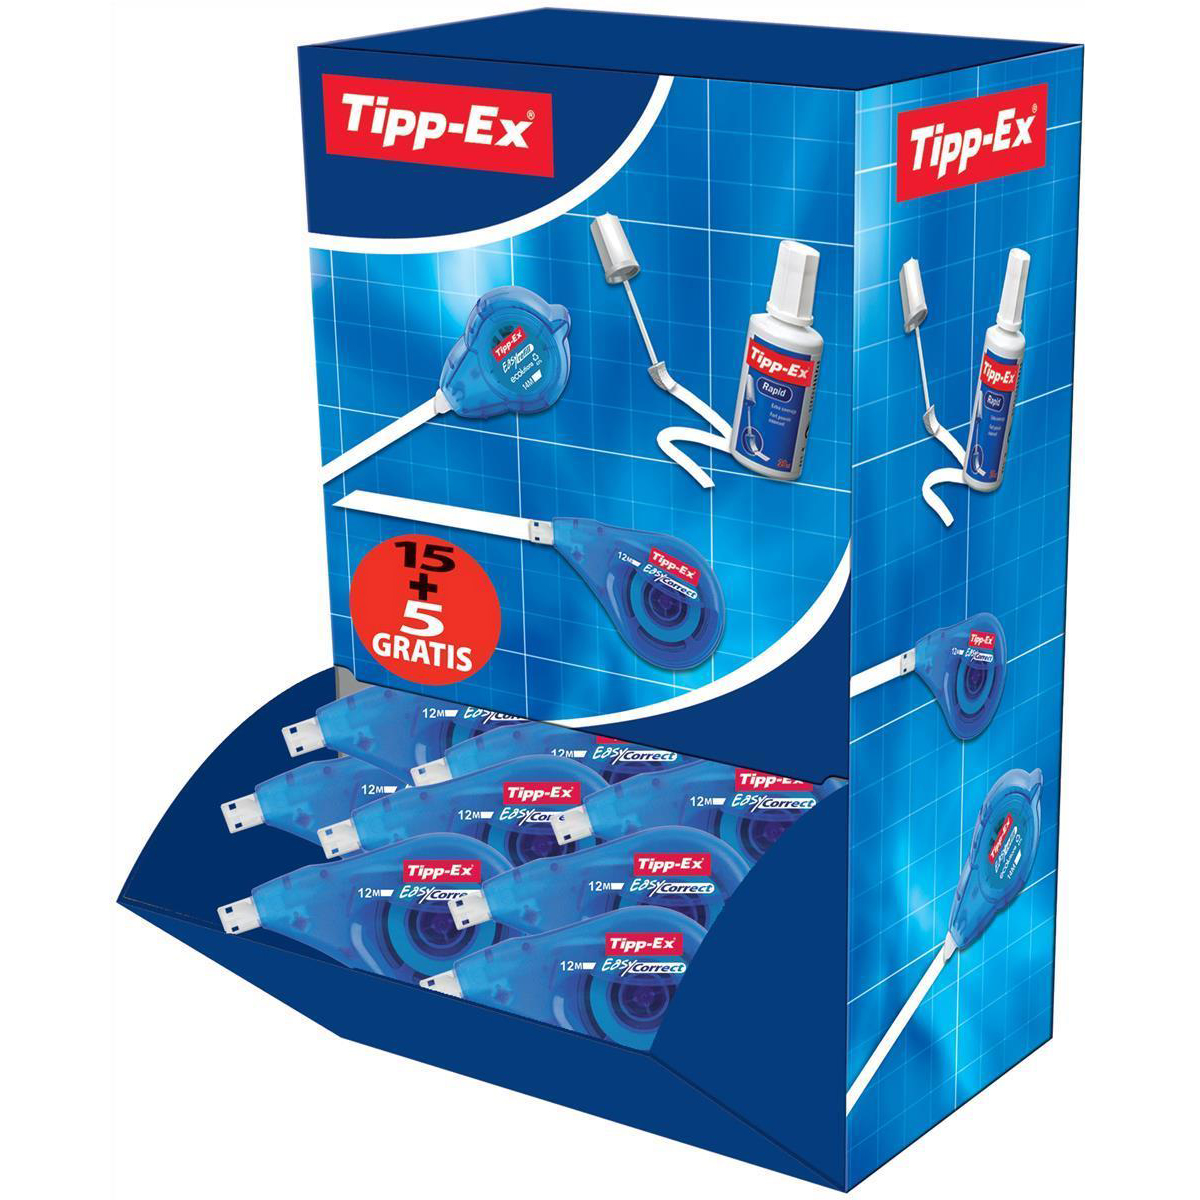 Correction Tape Tipp-Ex Easy-correct Correction Tape Roller 4.2mmx12m Ref 895951 [Pack 15 & 5]